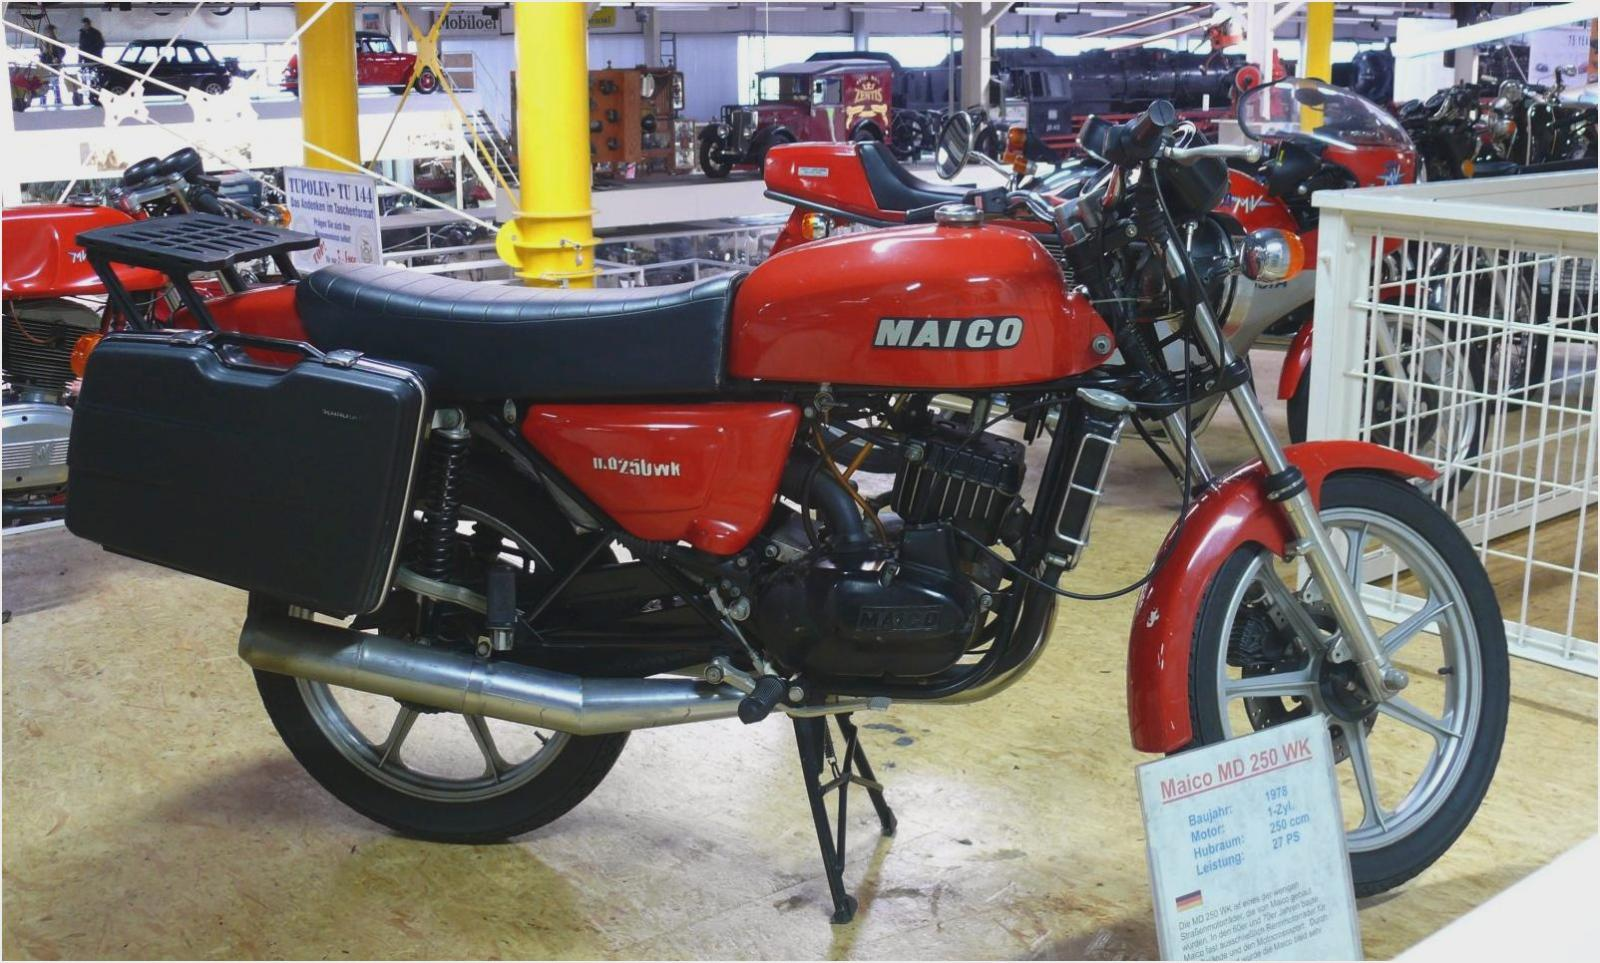 Maico MD 250 WK 1981 images #103496